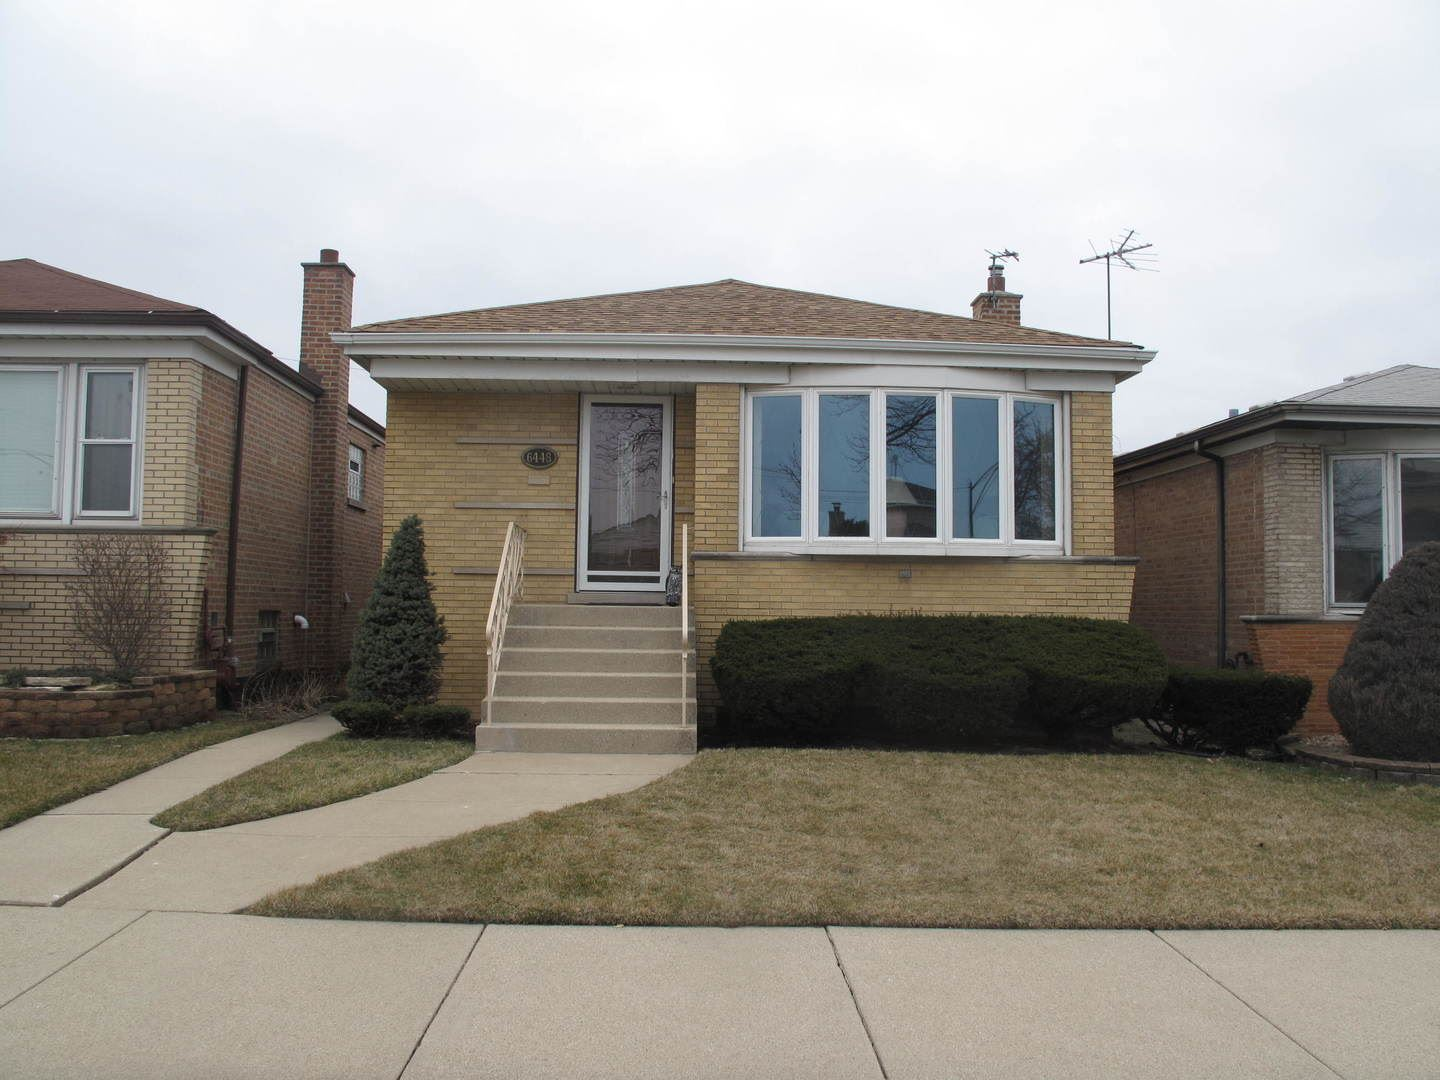 6448 S La Crosse Avenue, Chicago, IL 60638 - #: 10679062